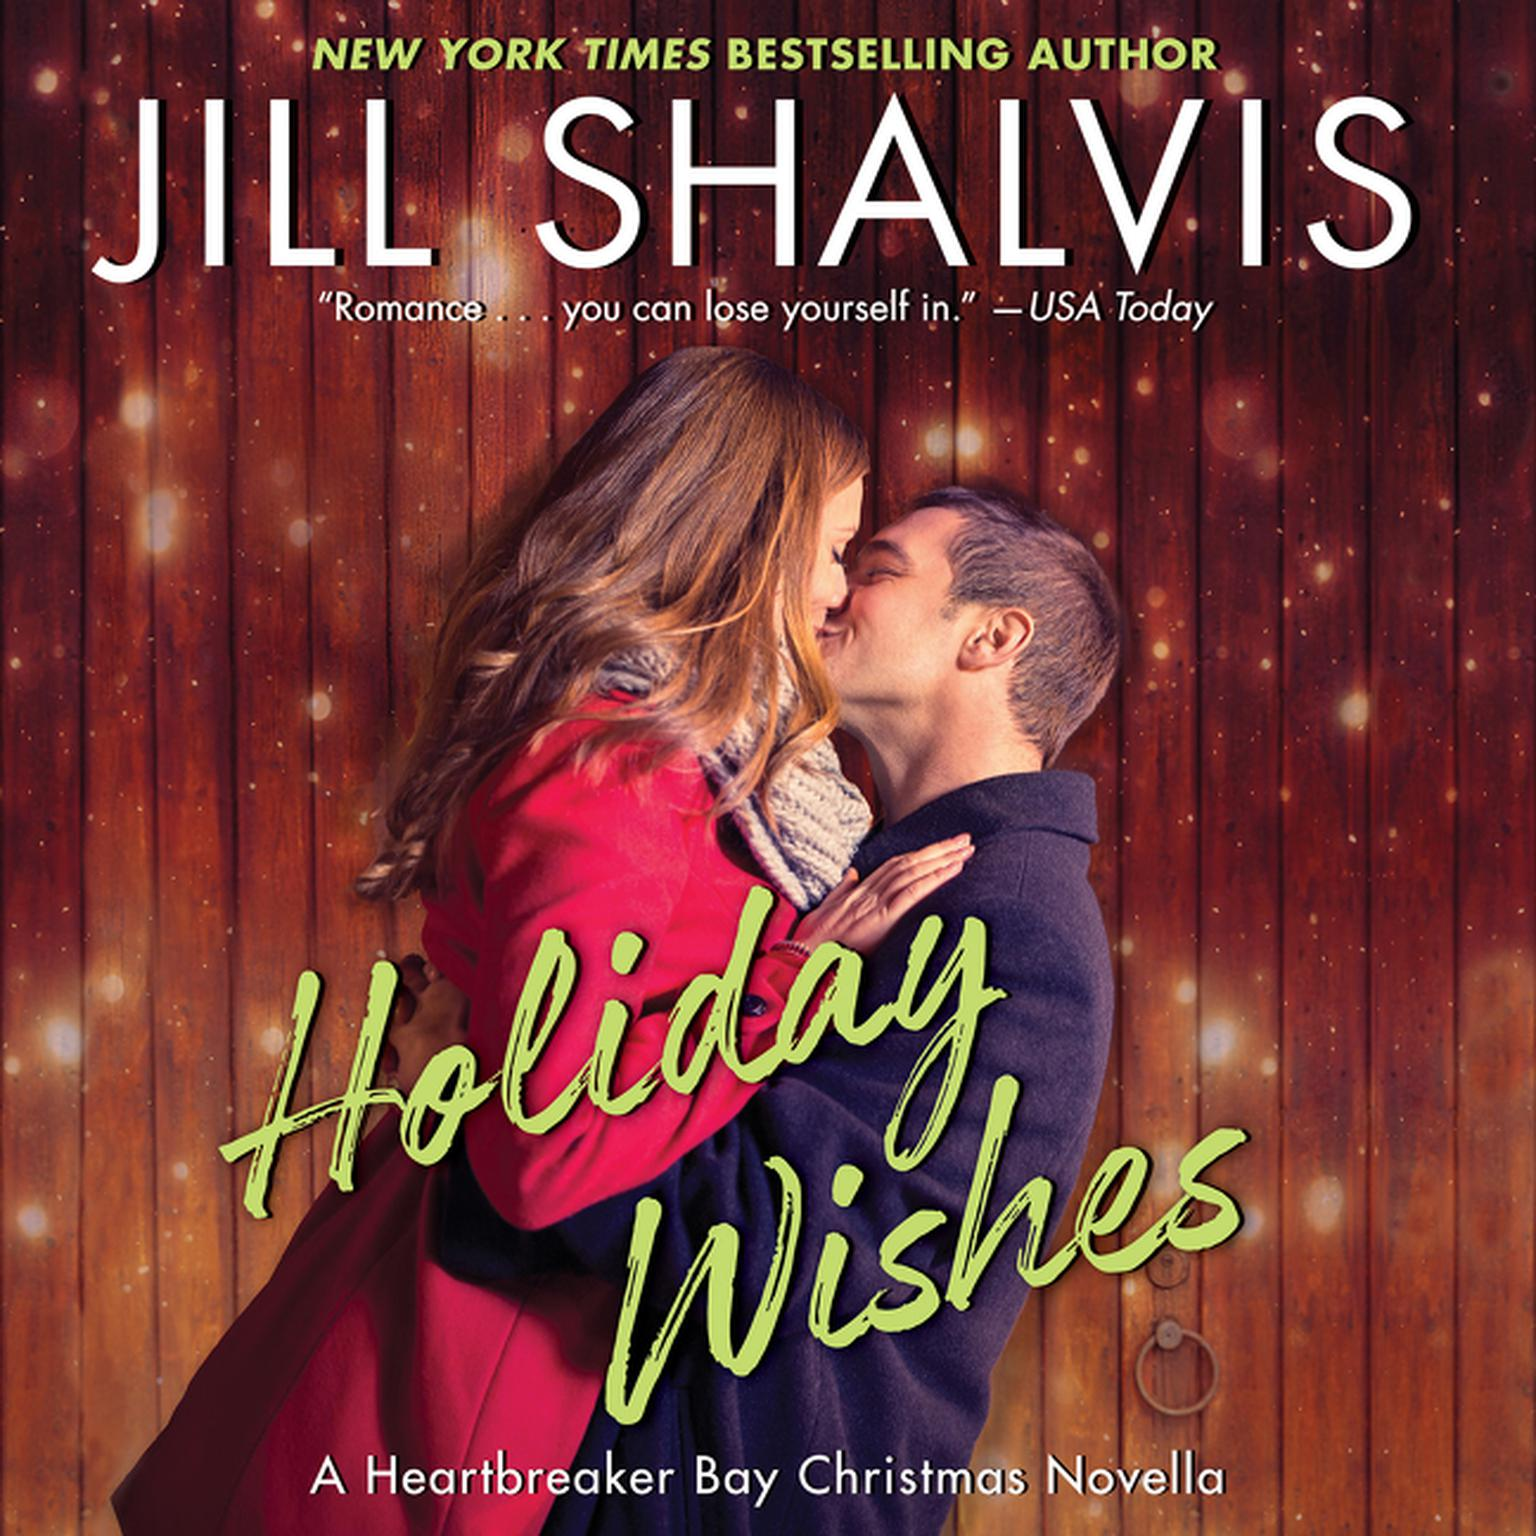 Printable Holiday Wishes: A Heartbreaker Bay Christmas Novella Audiobook Cover Art